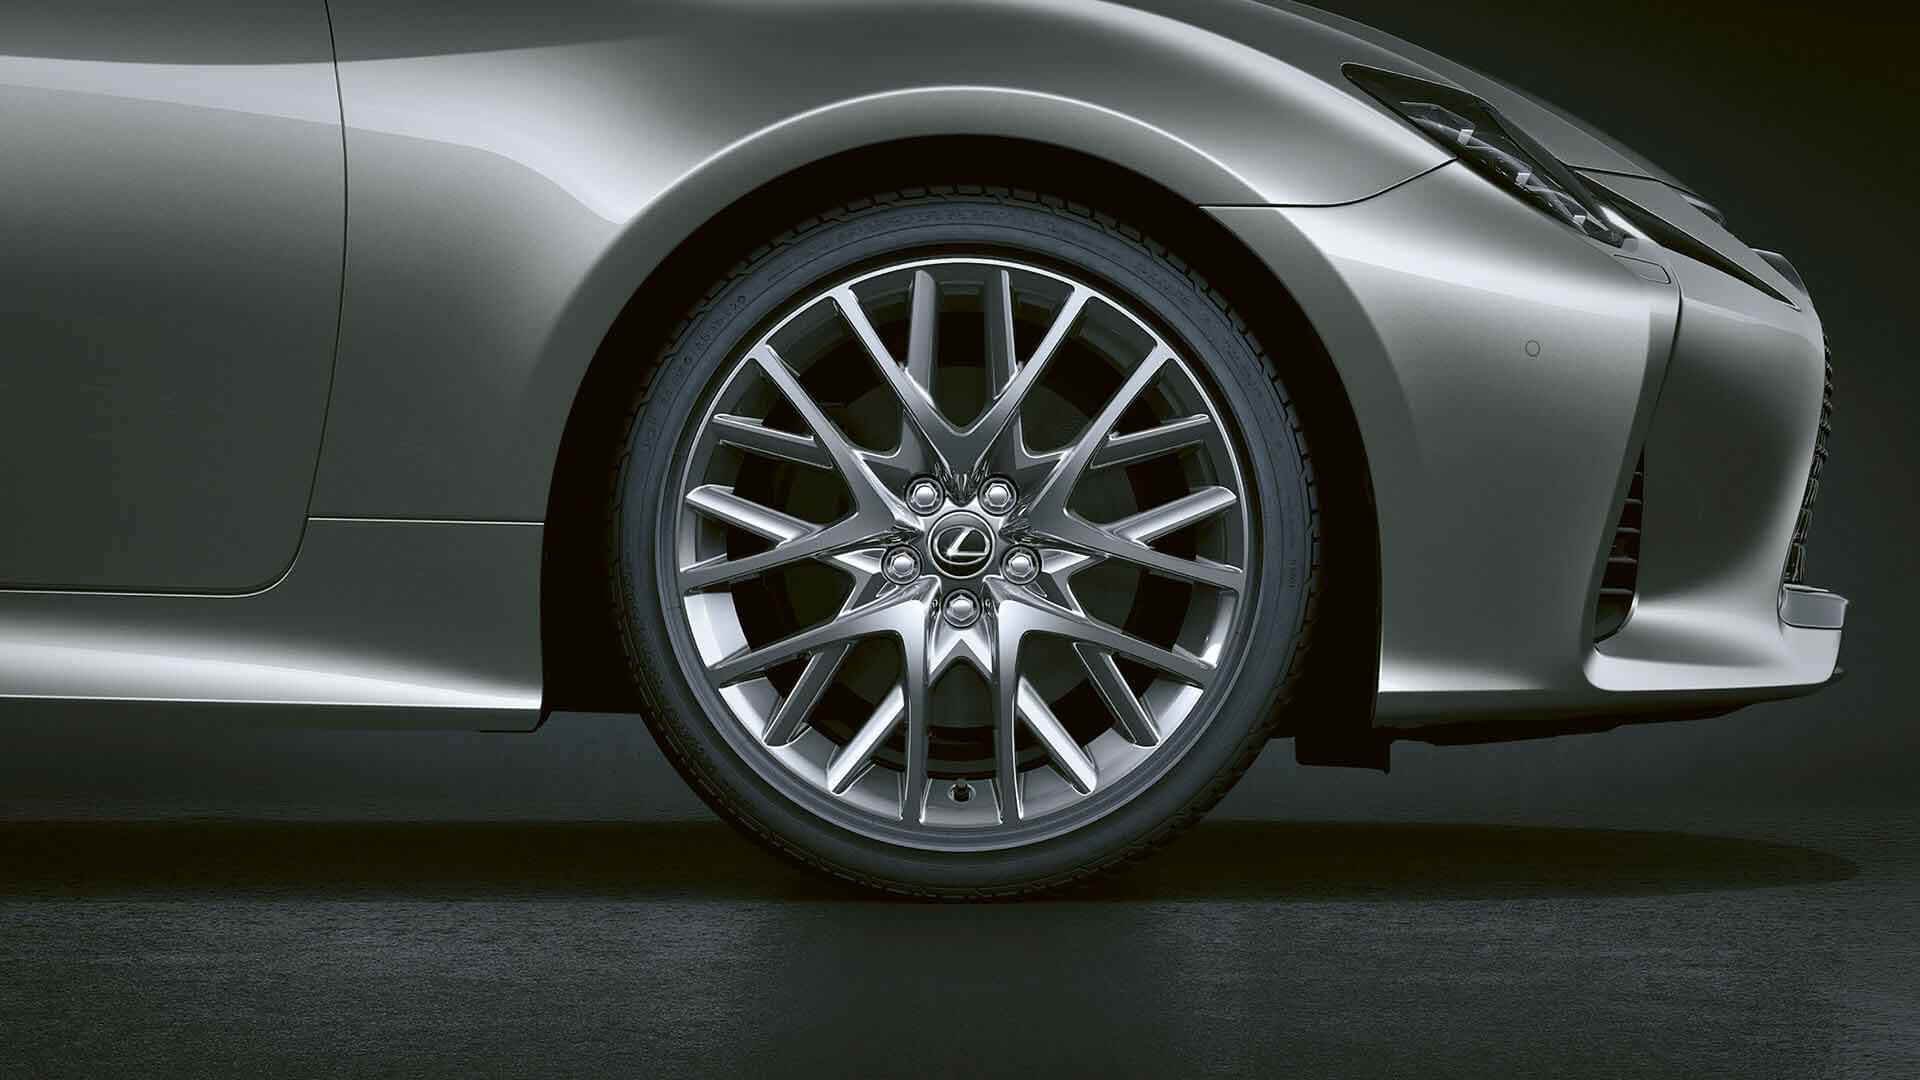 2018 lexus rc hotspot 18 19 inch alloy wheels